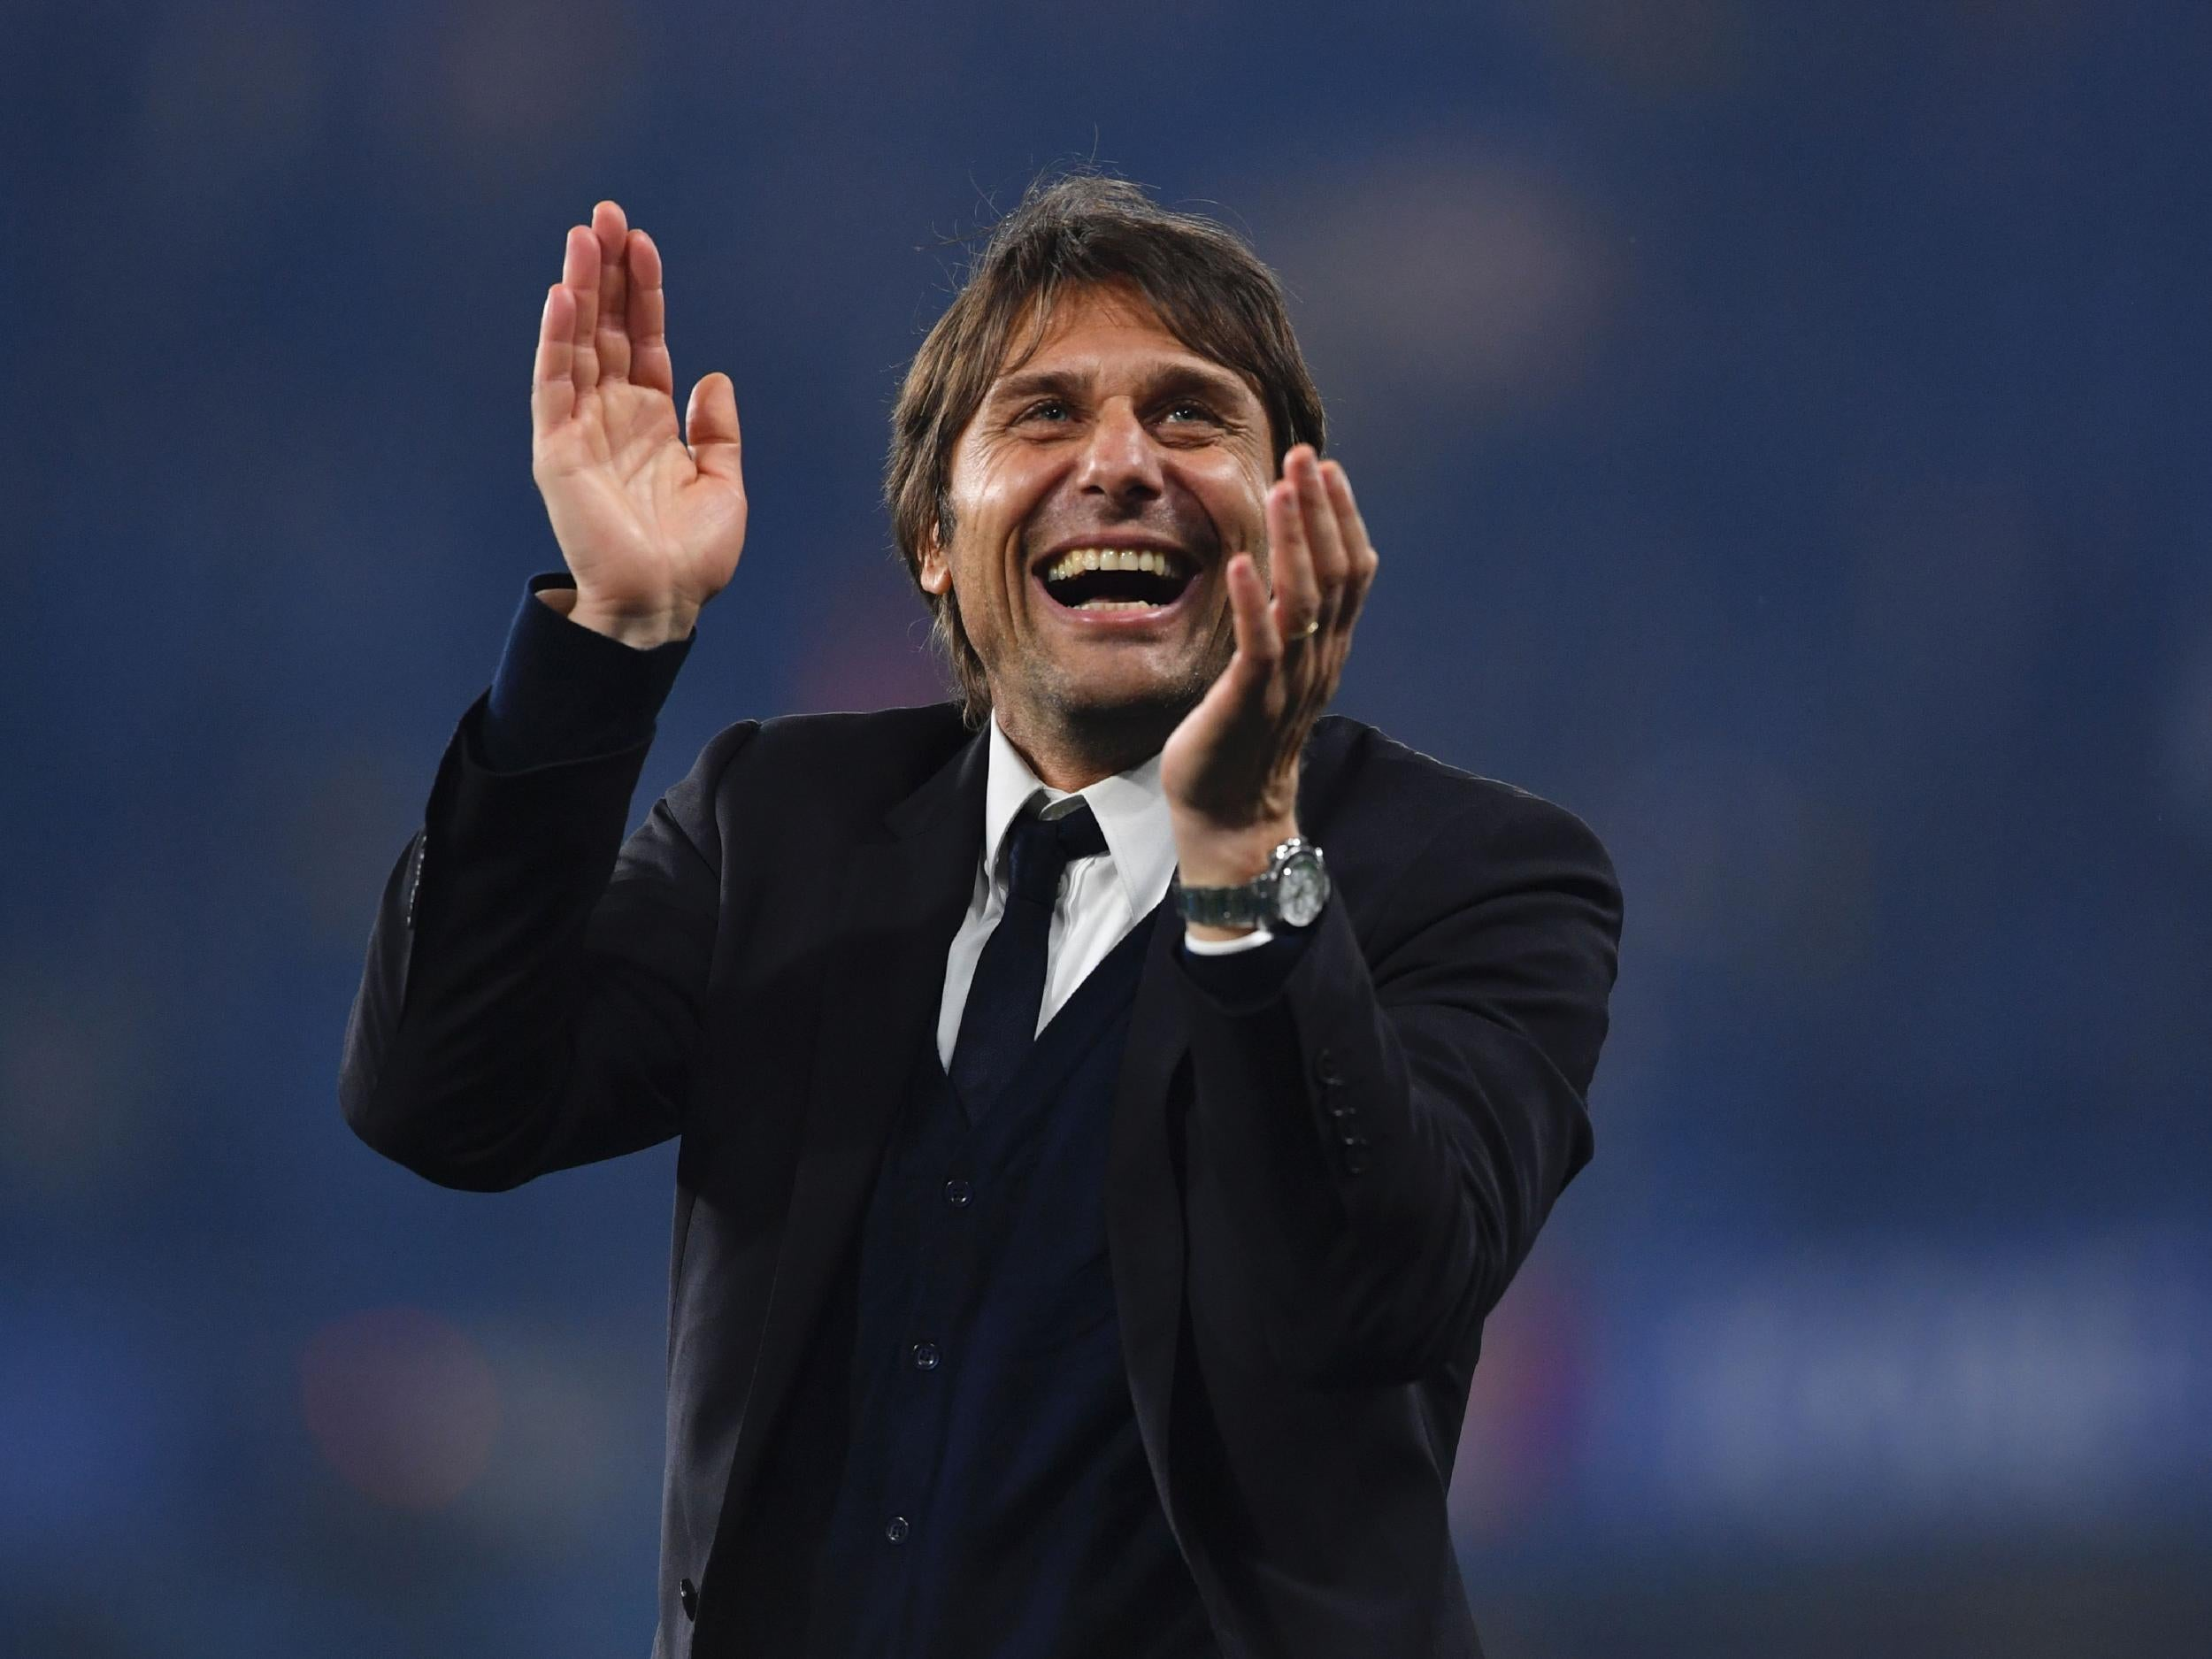 Antonio Conte reveals his family are moving to London to live with him, further quashing Inter Milan rumours